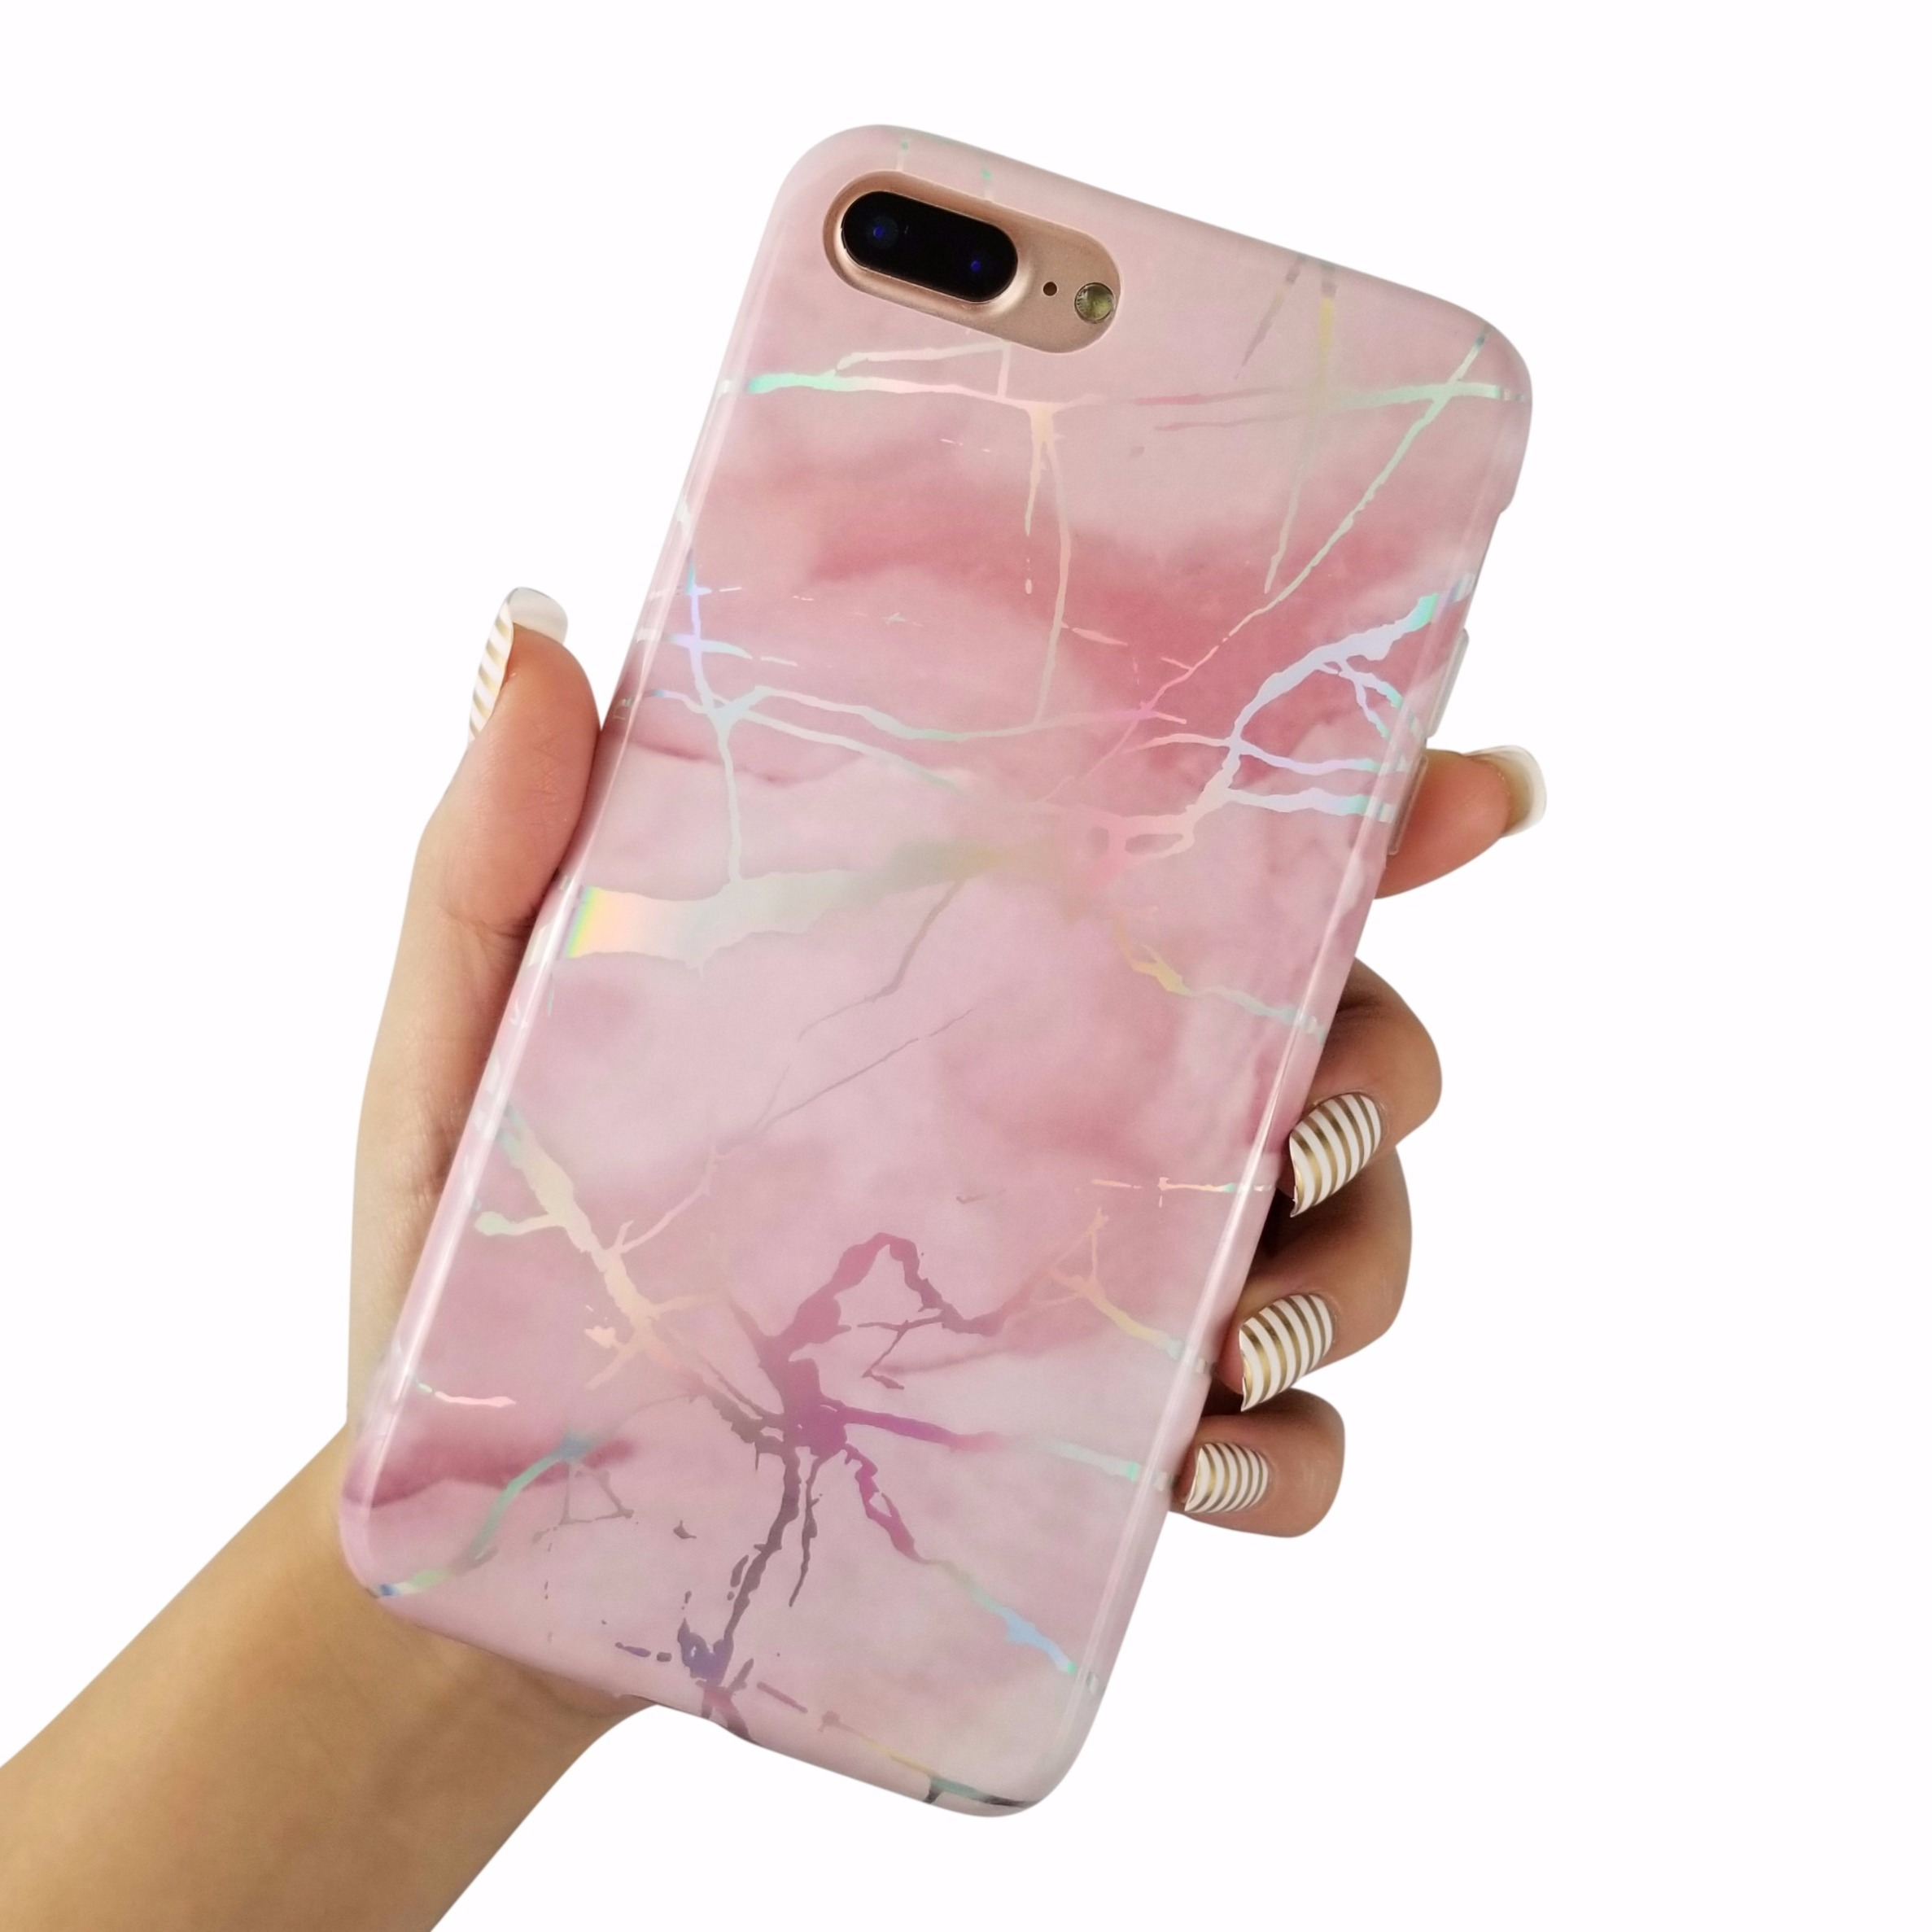 "For iPhone 8 Plus 5.5"" Glossy Laser Holographic Marble Soft TPU Case Cover"